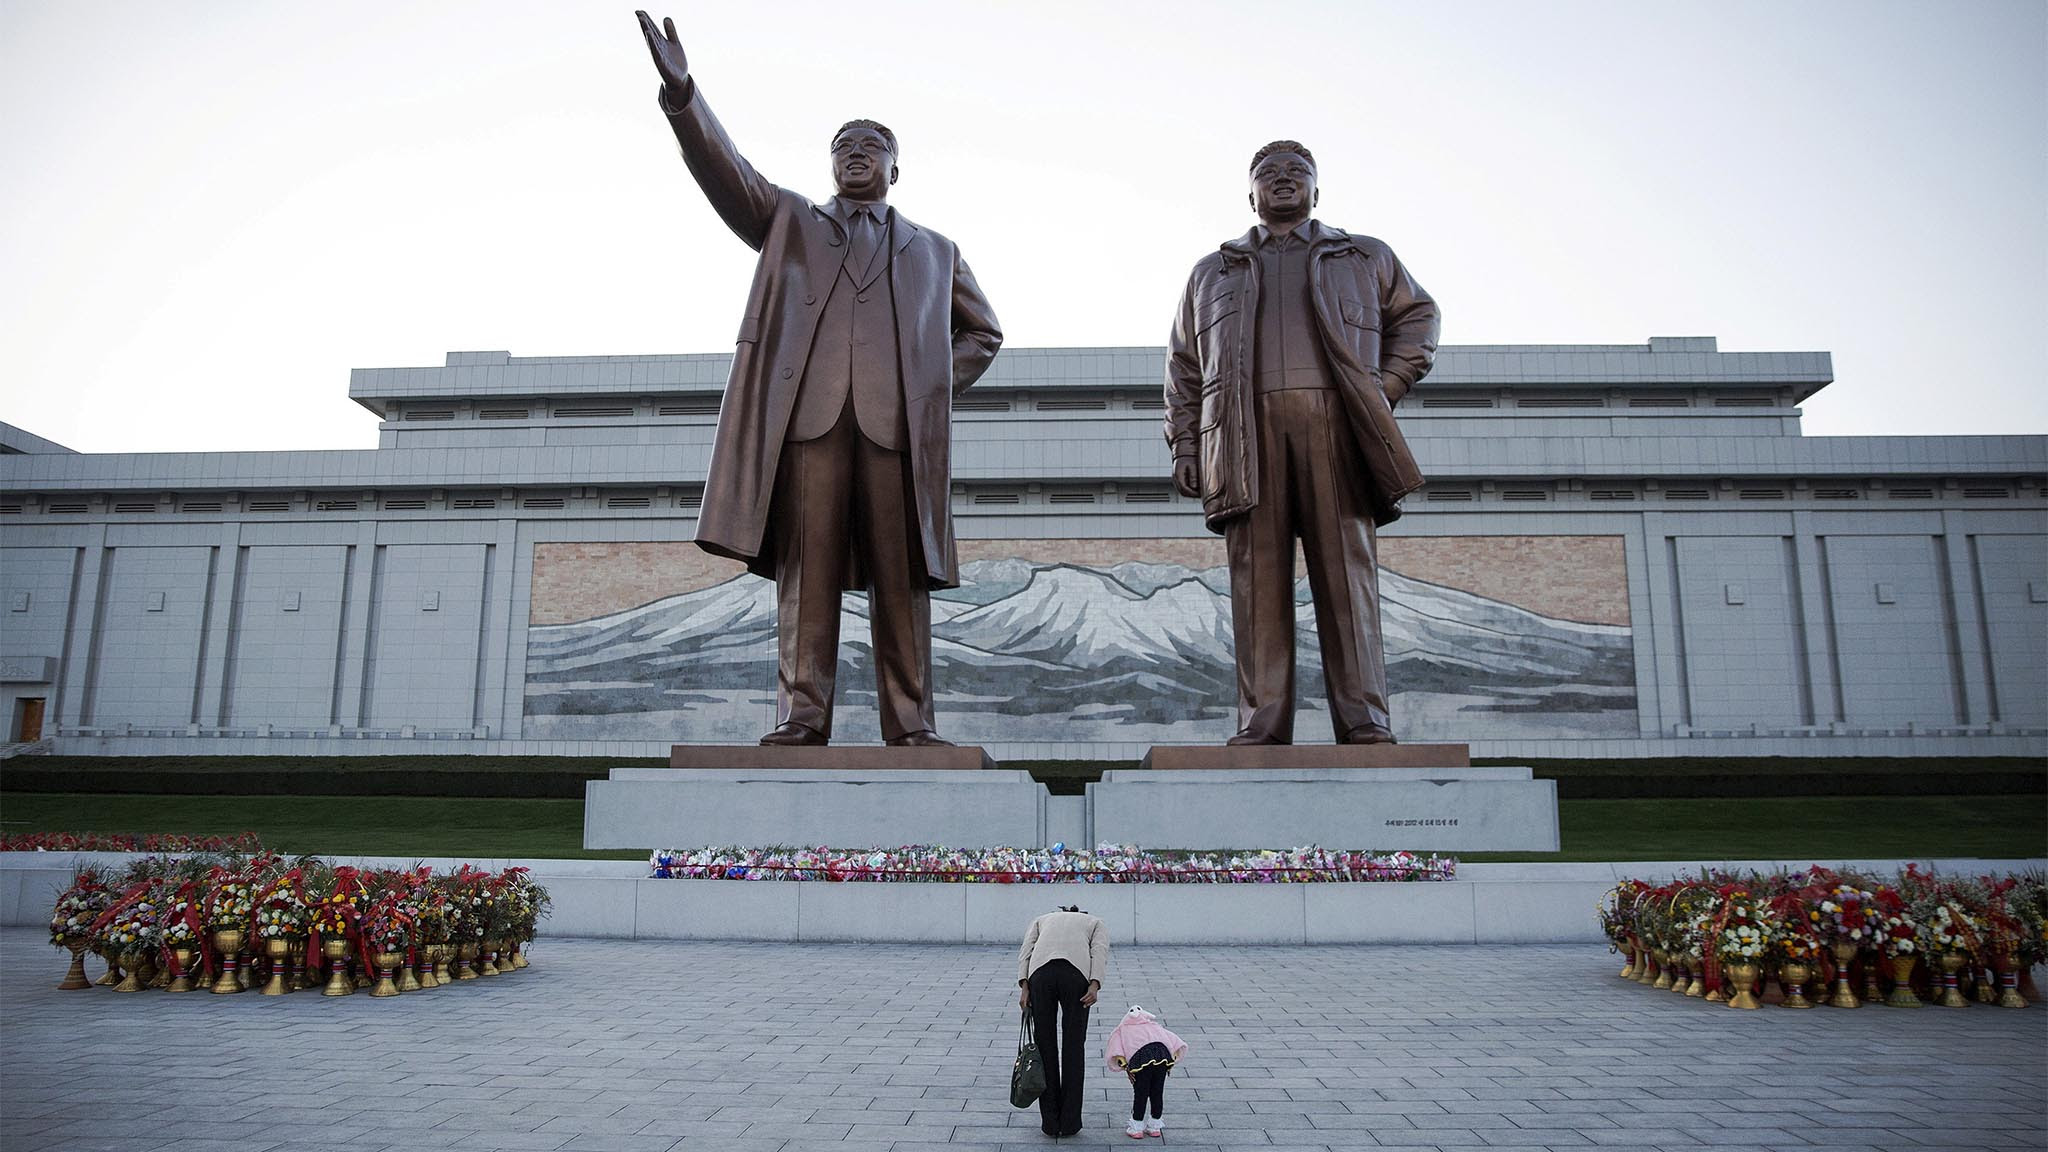 A woman and her daughter their respects at statues of North Korea founder Kim Il Sung (L) and late leader Kim Jong Il in Pyongyang